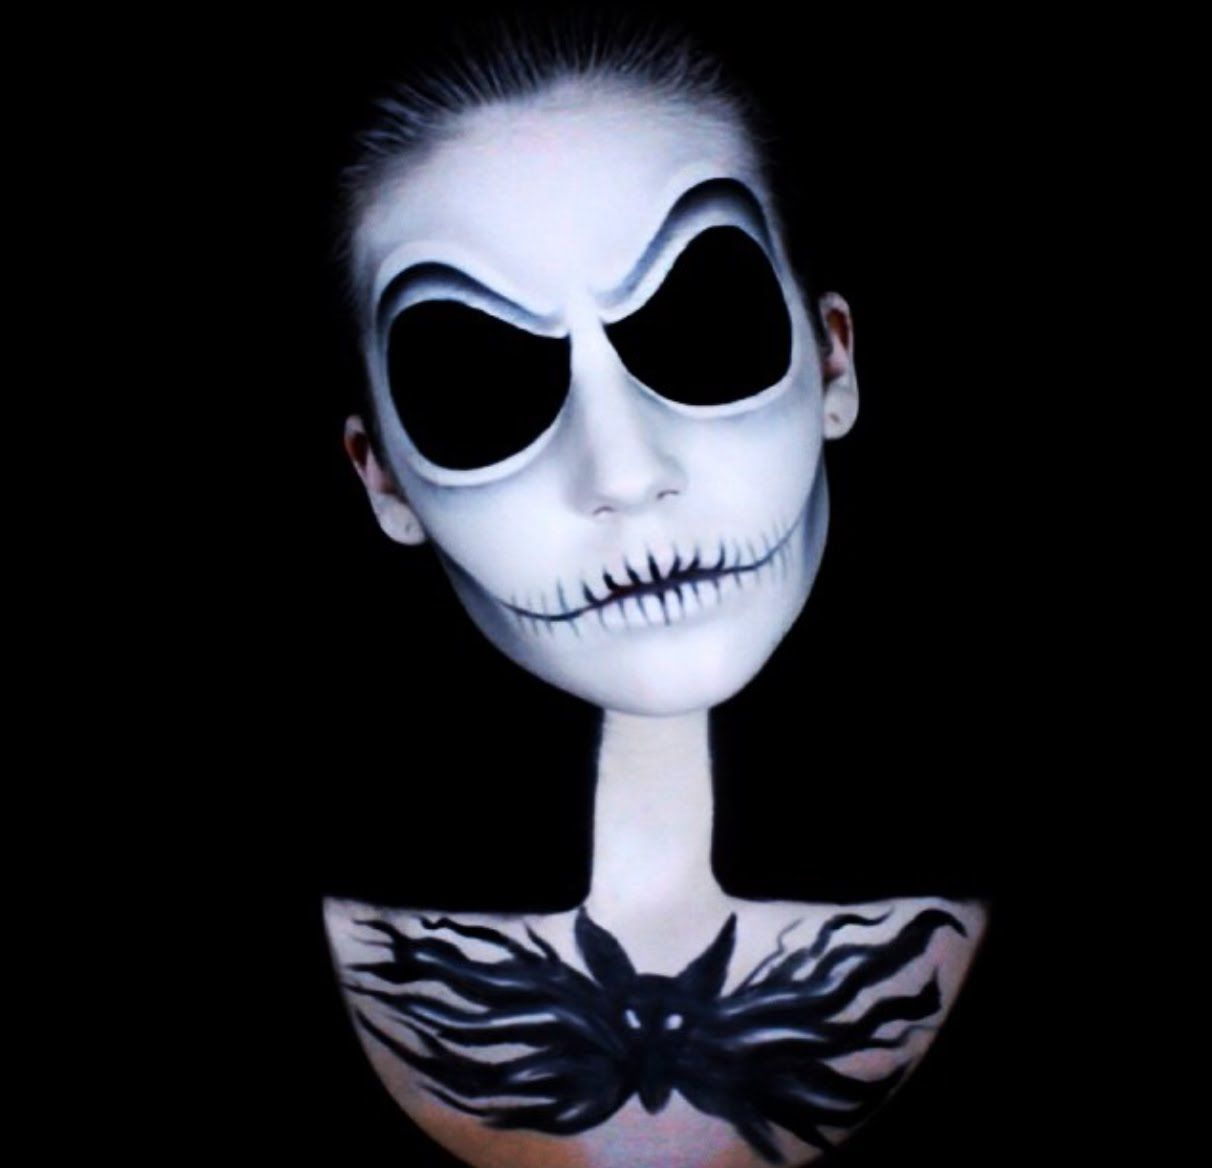 Diy jack skellington s body nightmare before christmas youtube - Halloween Is Upon Us Today We Are Going To Become The Pumpkin King The Look Is Based Off Of This Incredible Jack Skellington Makeup By Lin